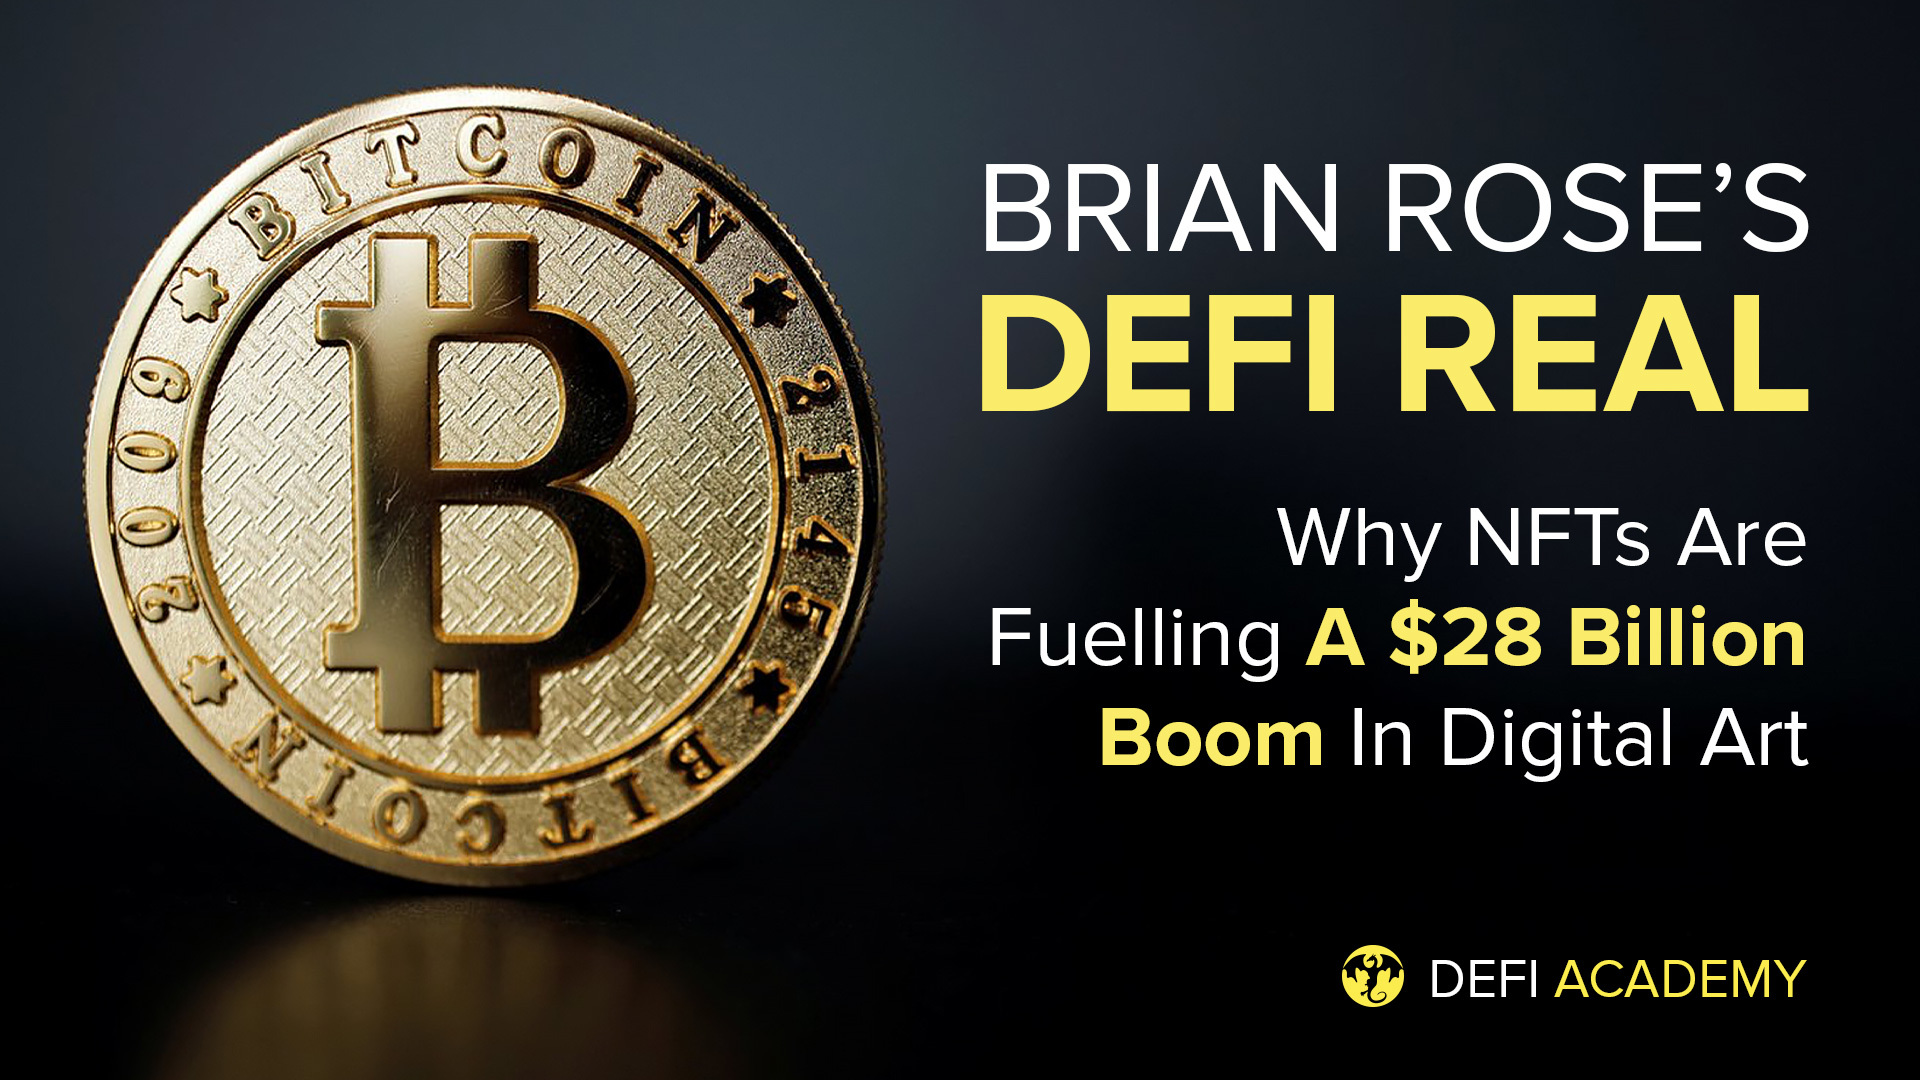 Why NFTs Are Fuelling A $28 Billion Boom In Digital Art & How You Can Profit - Brian Rose's DeFi Real